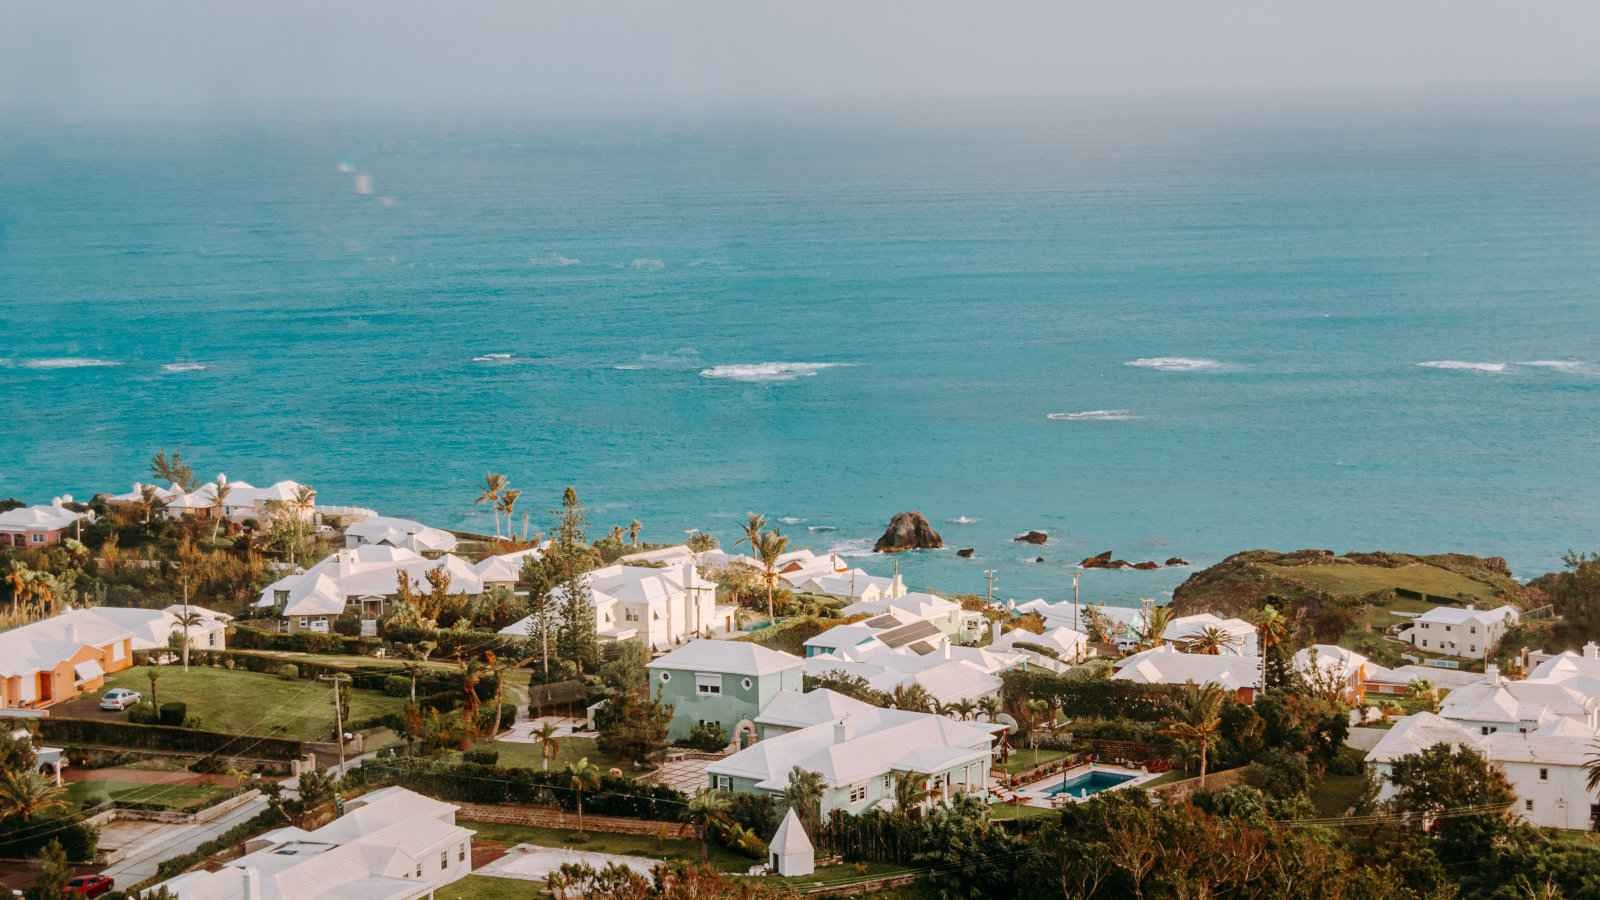 Bermuda has become very gay friendly in recent years, so it's perfect for a pink holiday!